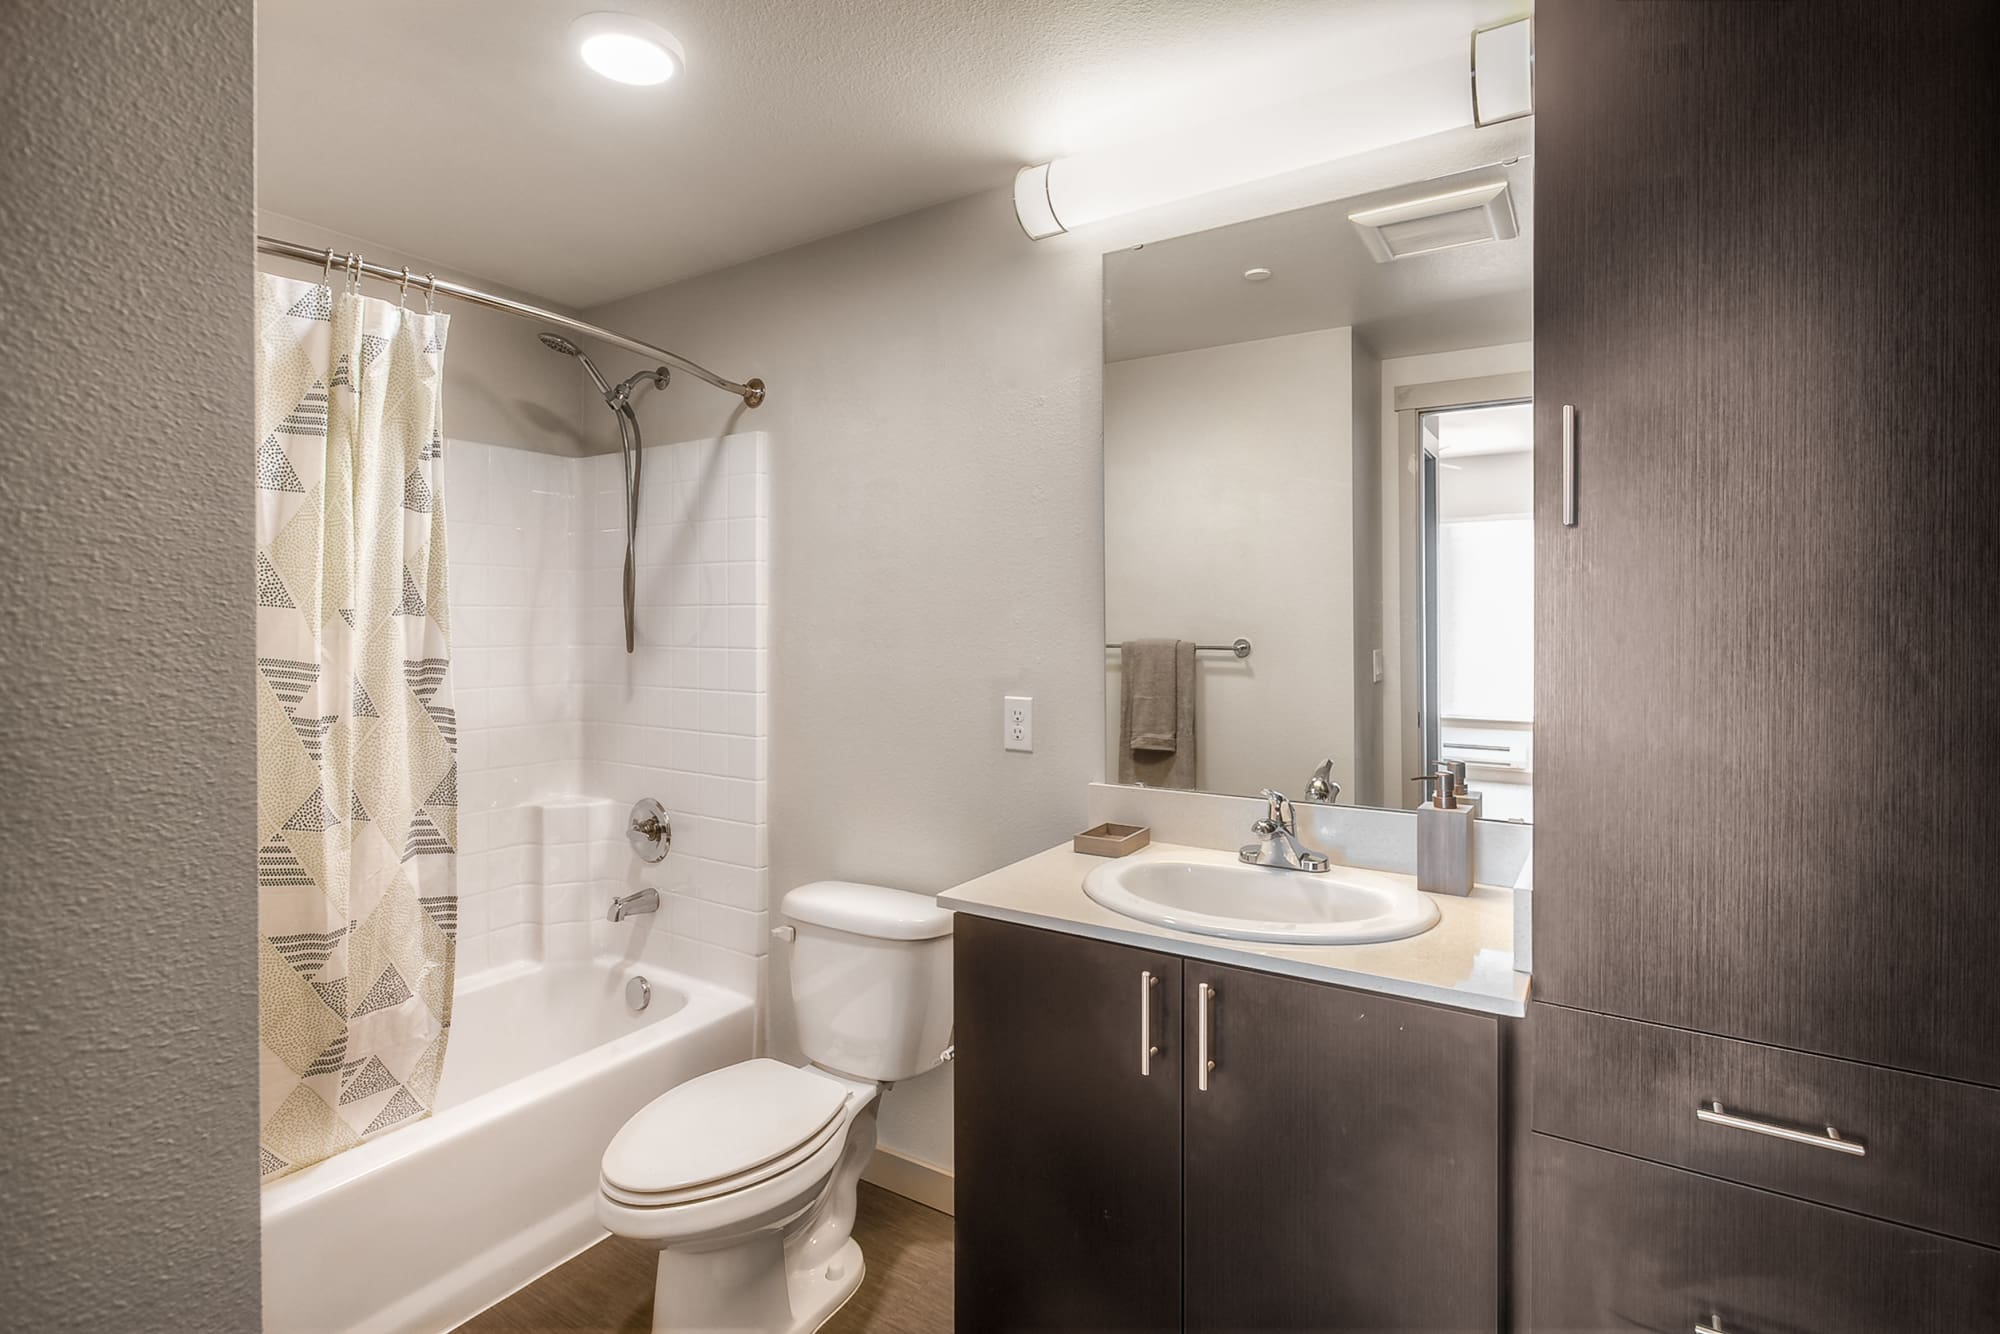 Model bathroom with tub at Tria Apartments in Newcastle